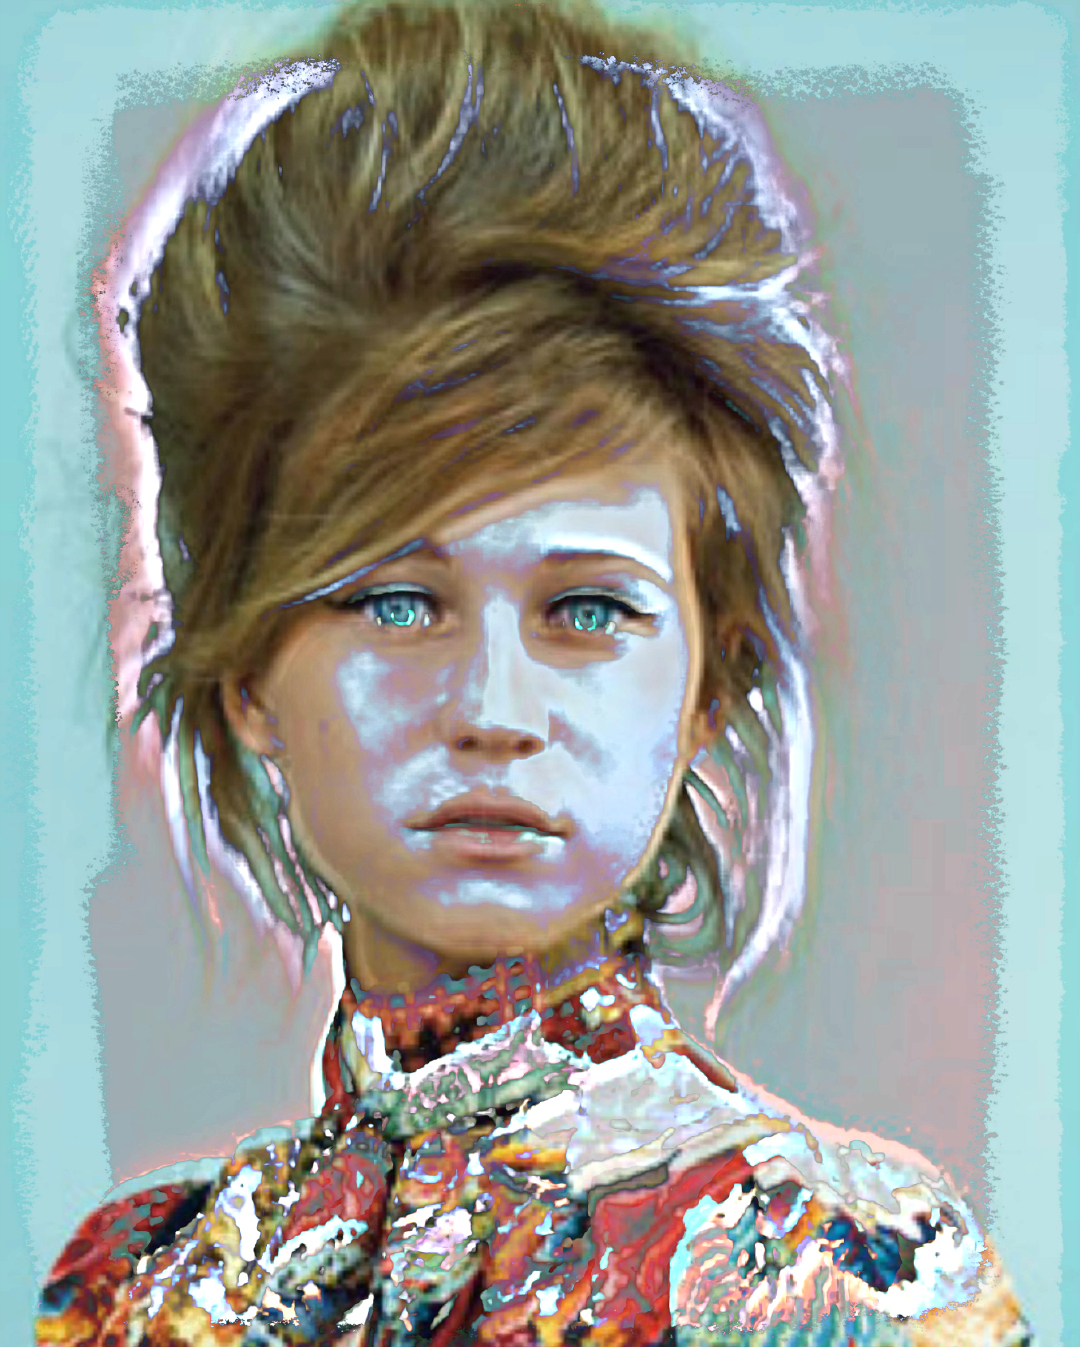 Digital Art Portraits Selah Sue